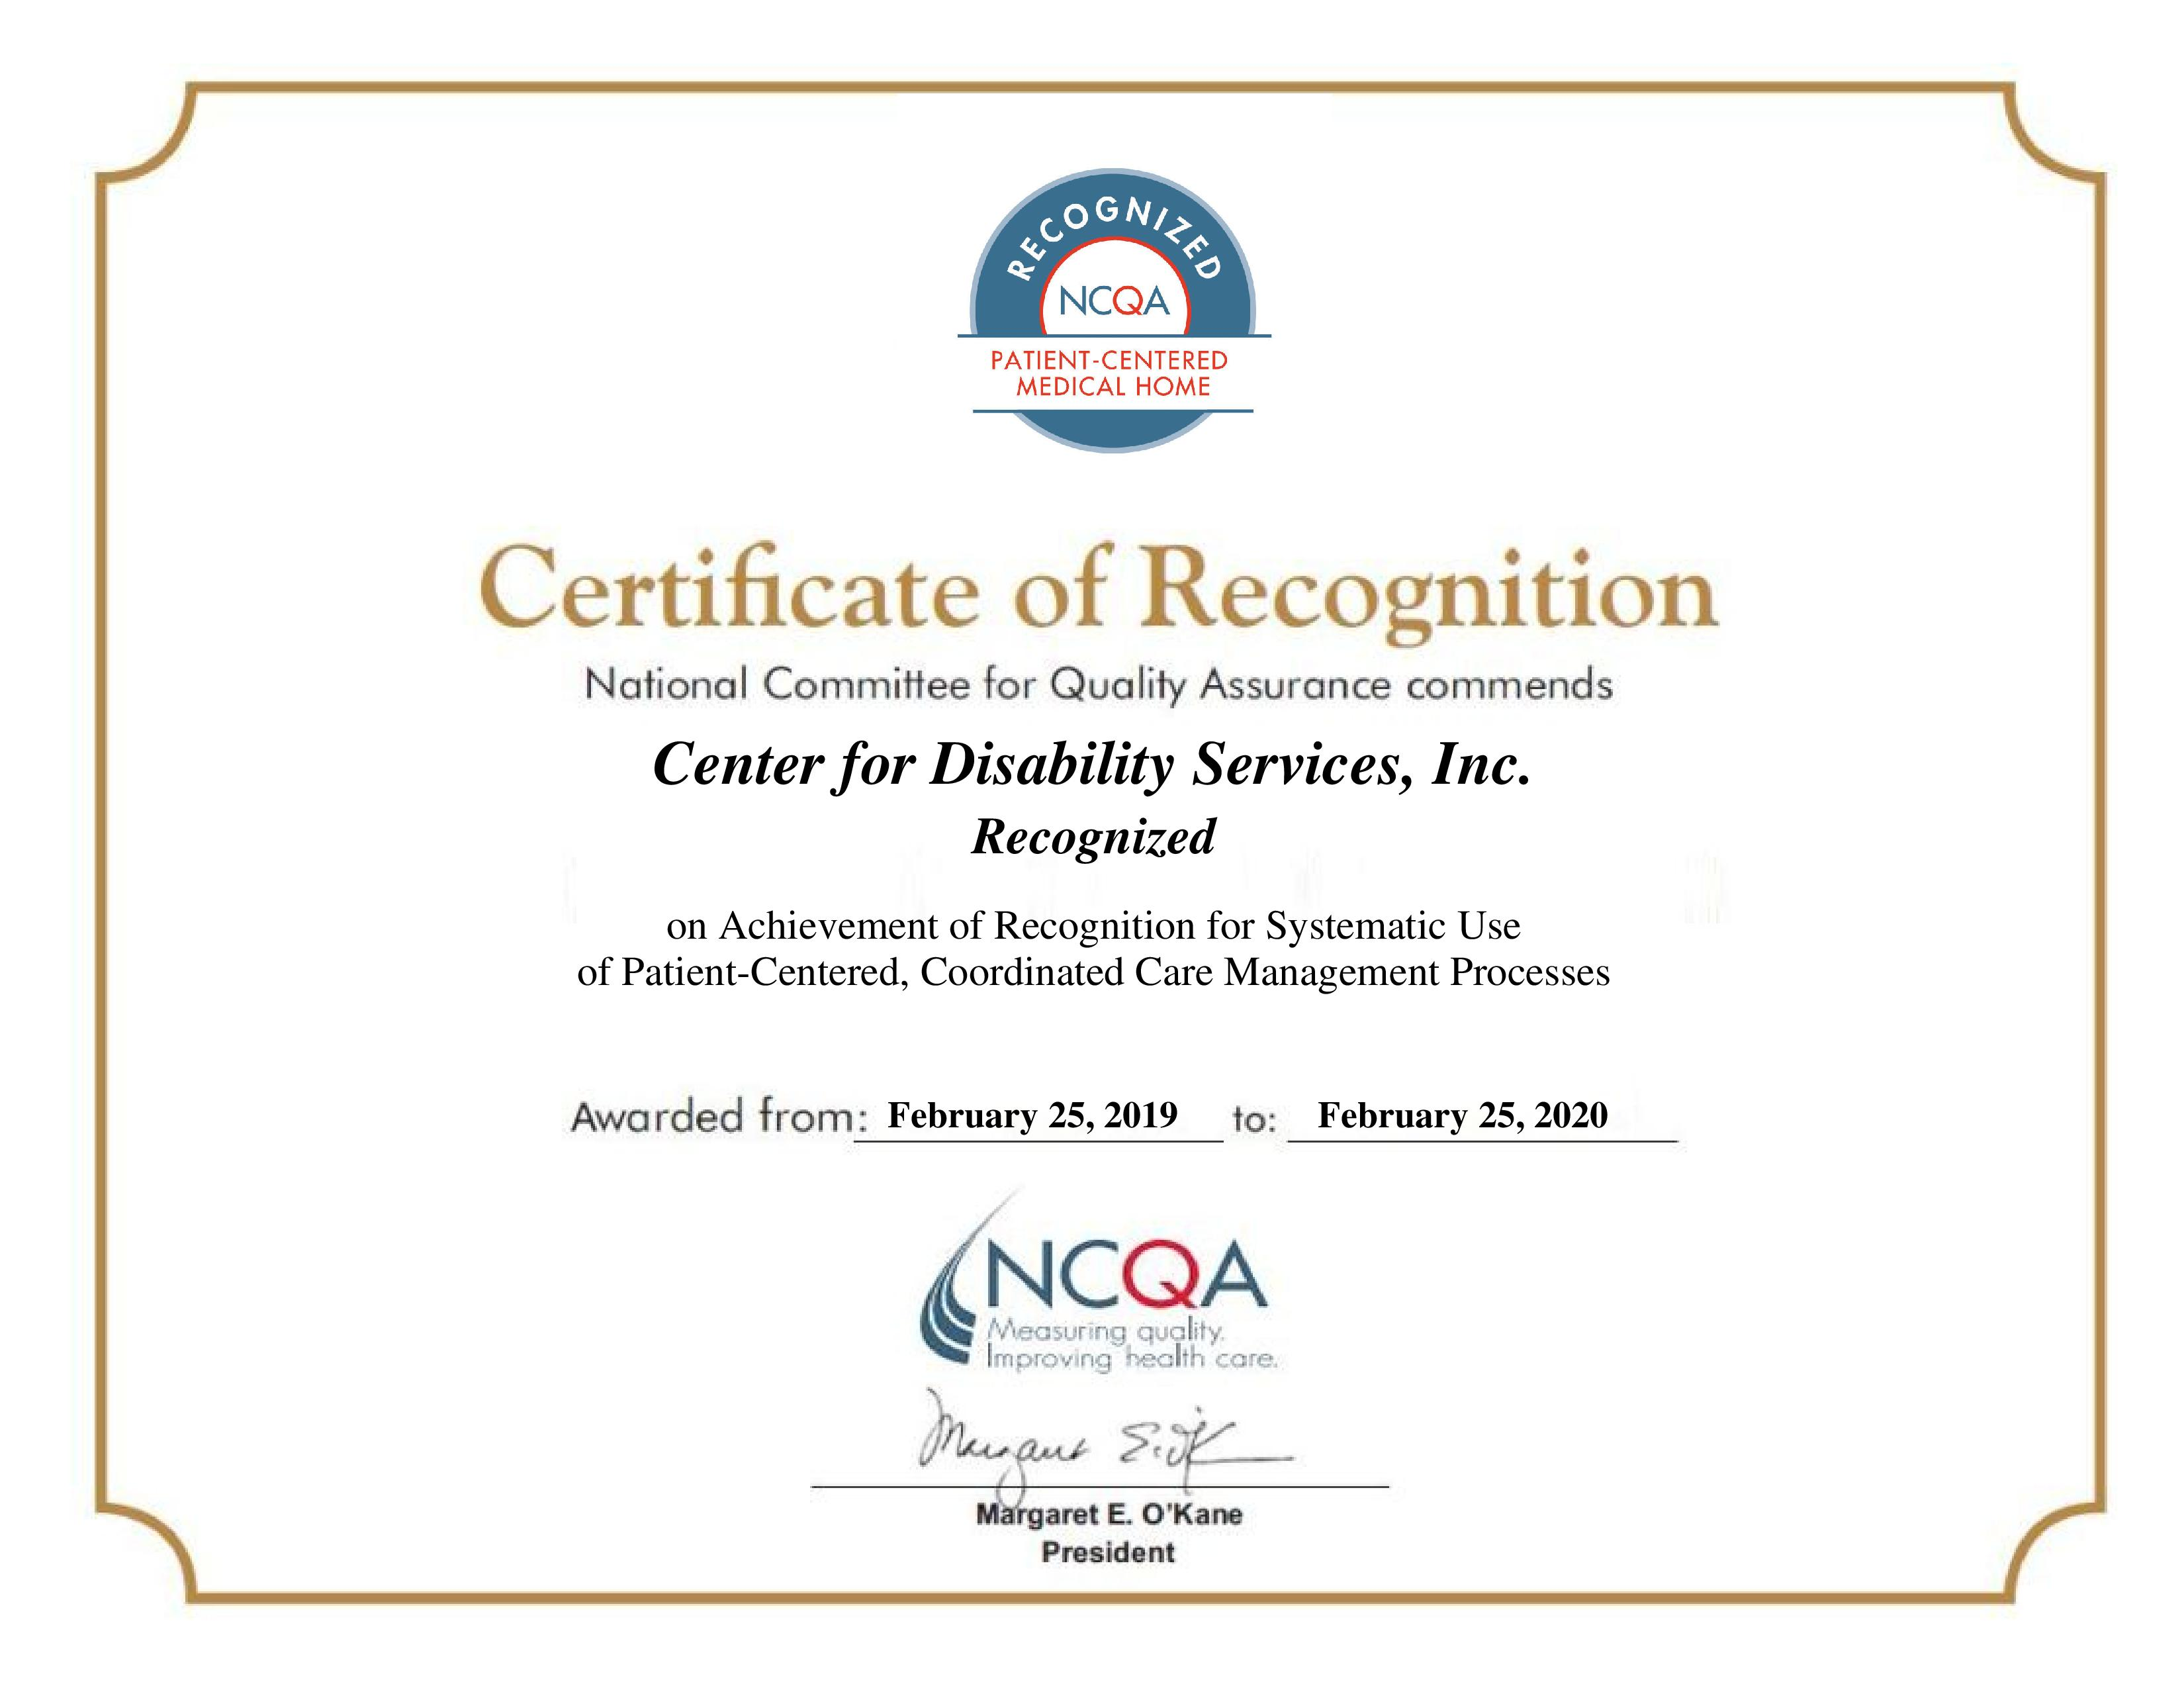 Center for Disability Services_NYS PCMH Certificate_Feb 25 2019_Feb 25 2   -page-001.jpg